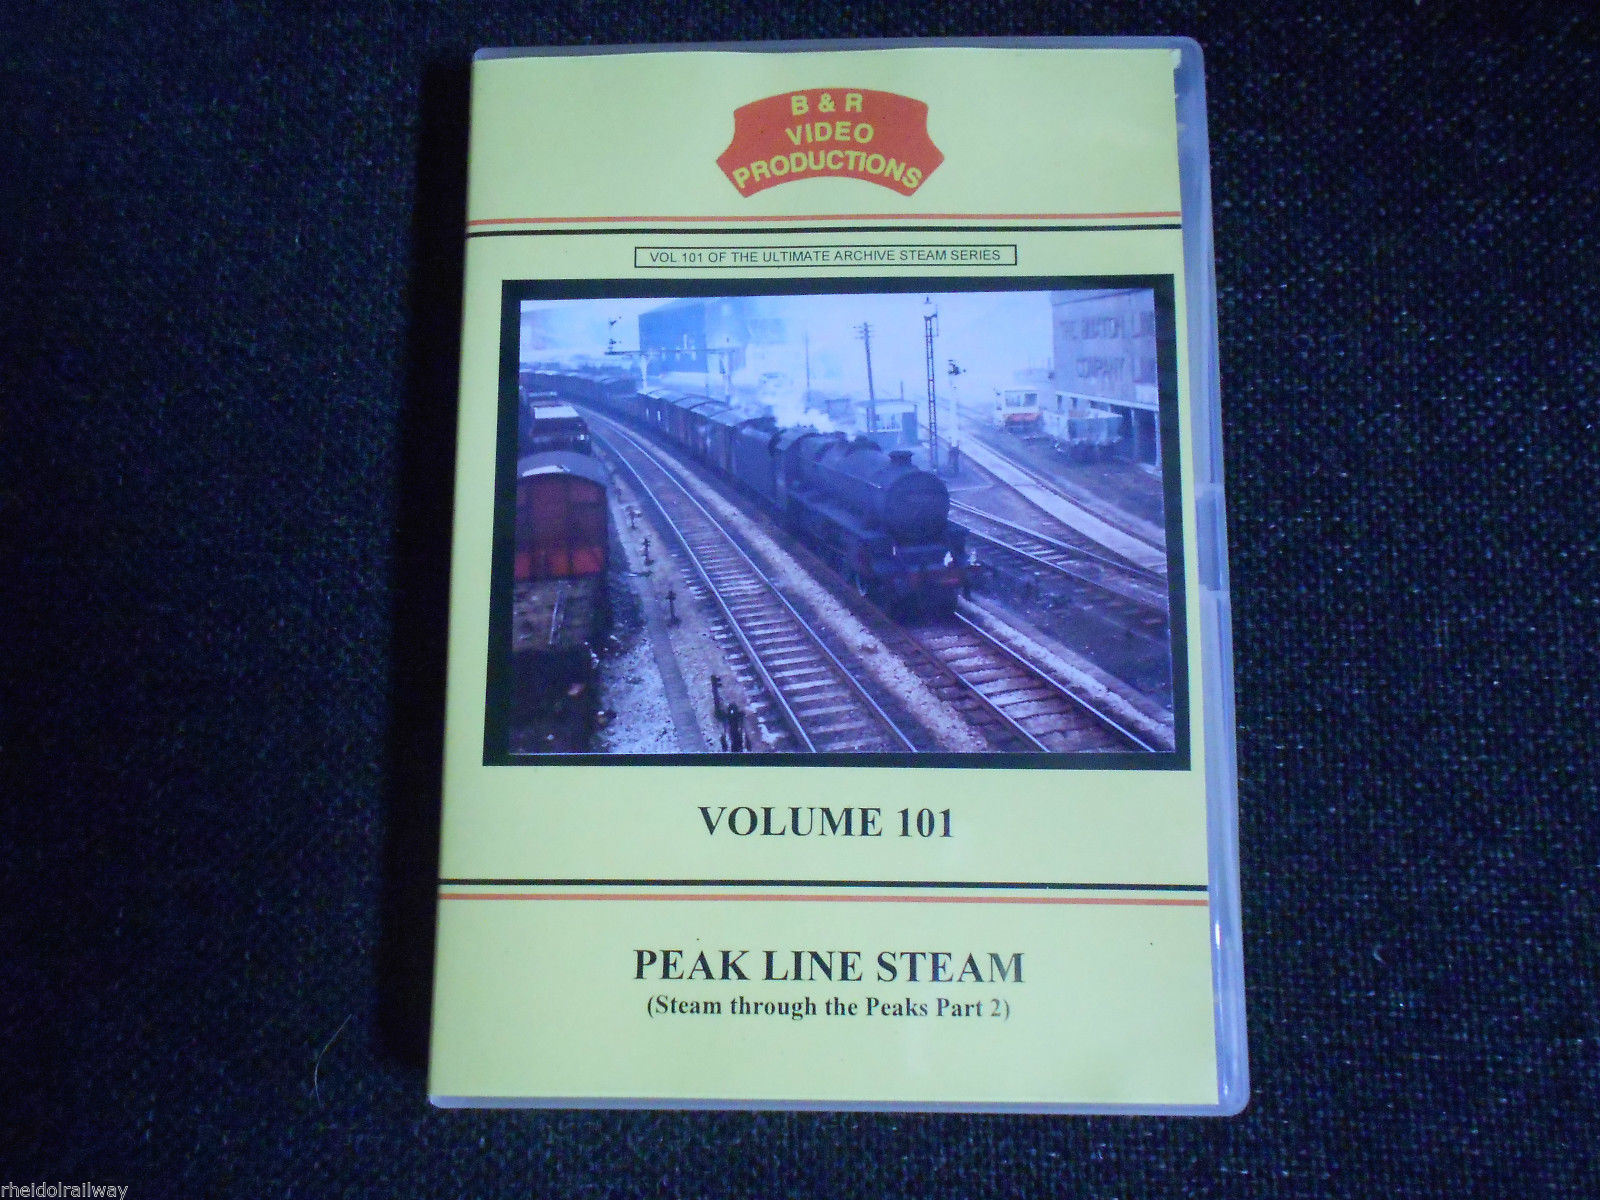 Buxton, Hopton, Peak Line Steam Part 2, Steam Through The Peaks B&R Vol 101 DVD - The Vale of Rheidol Railway